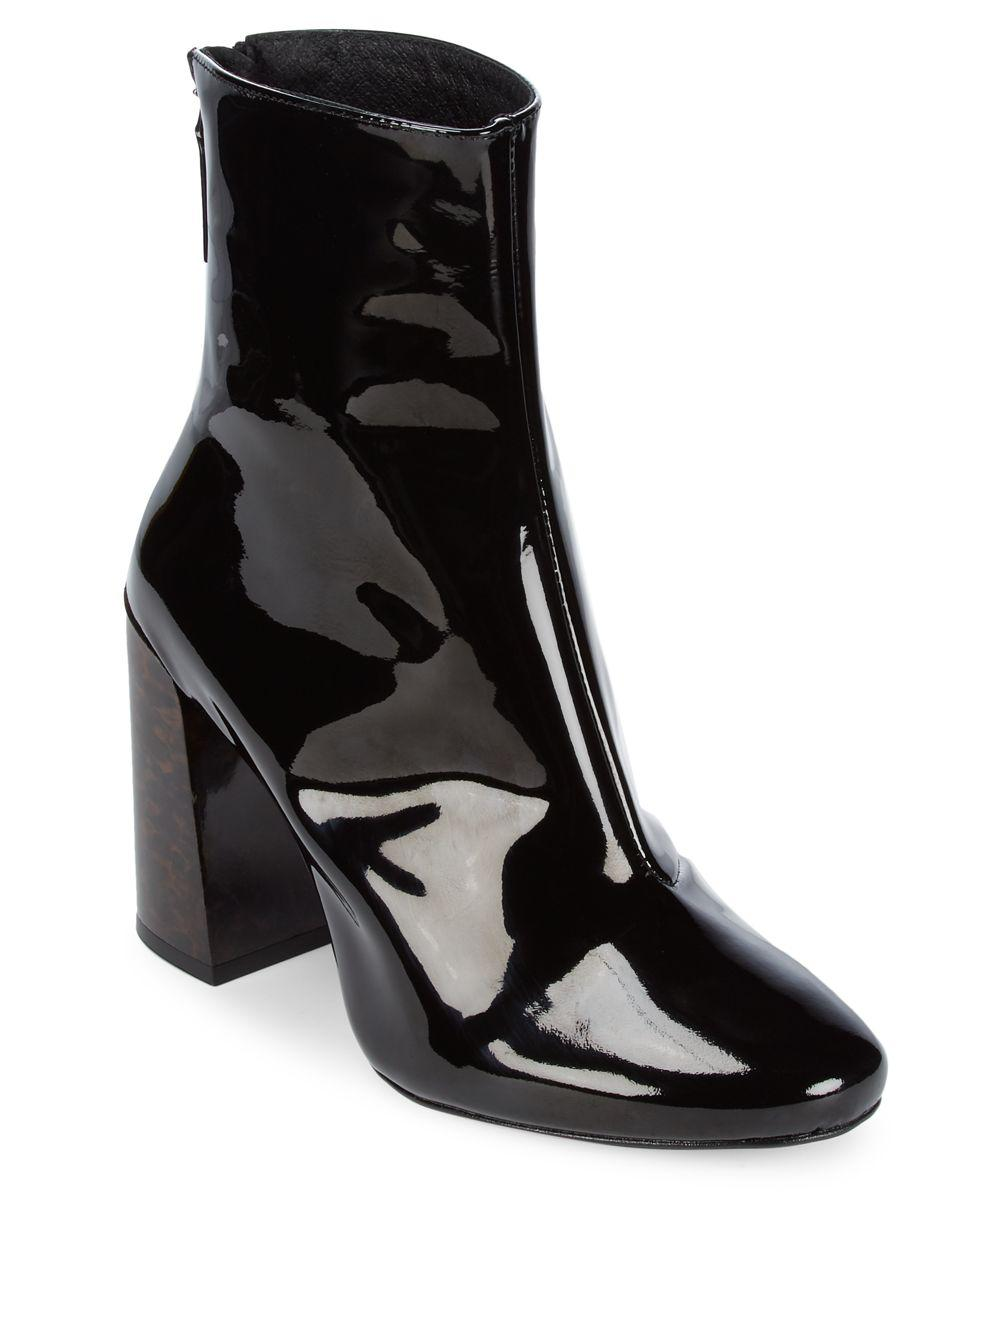 e3808587ffee Lyst - Pure Navy Patent Leather Booties in Black - Save 16%